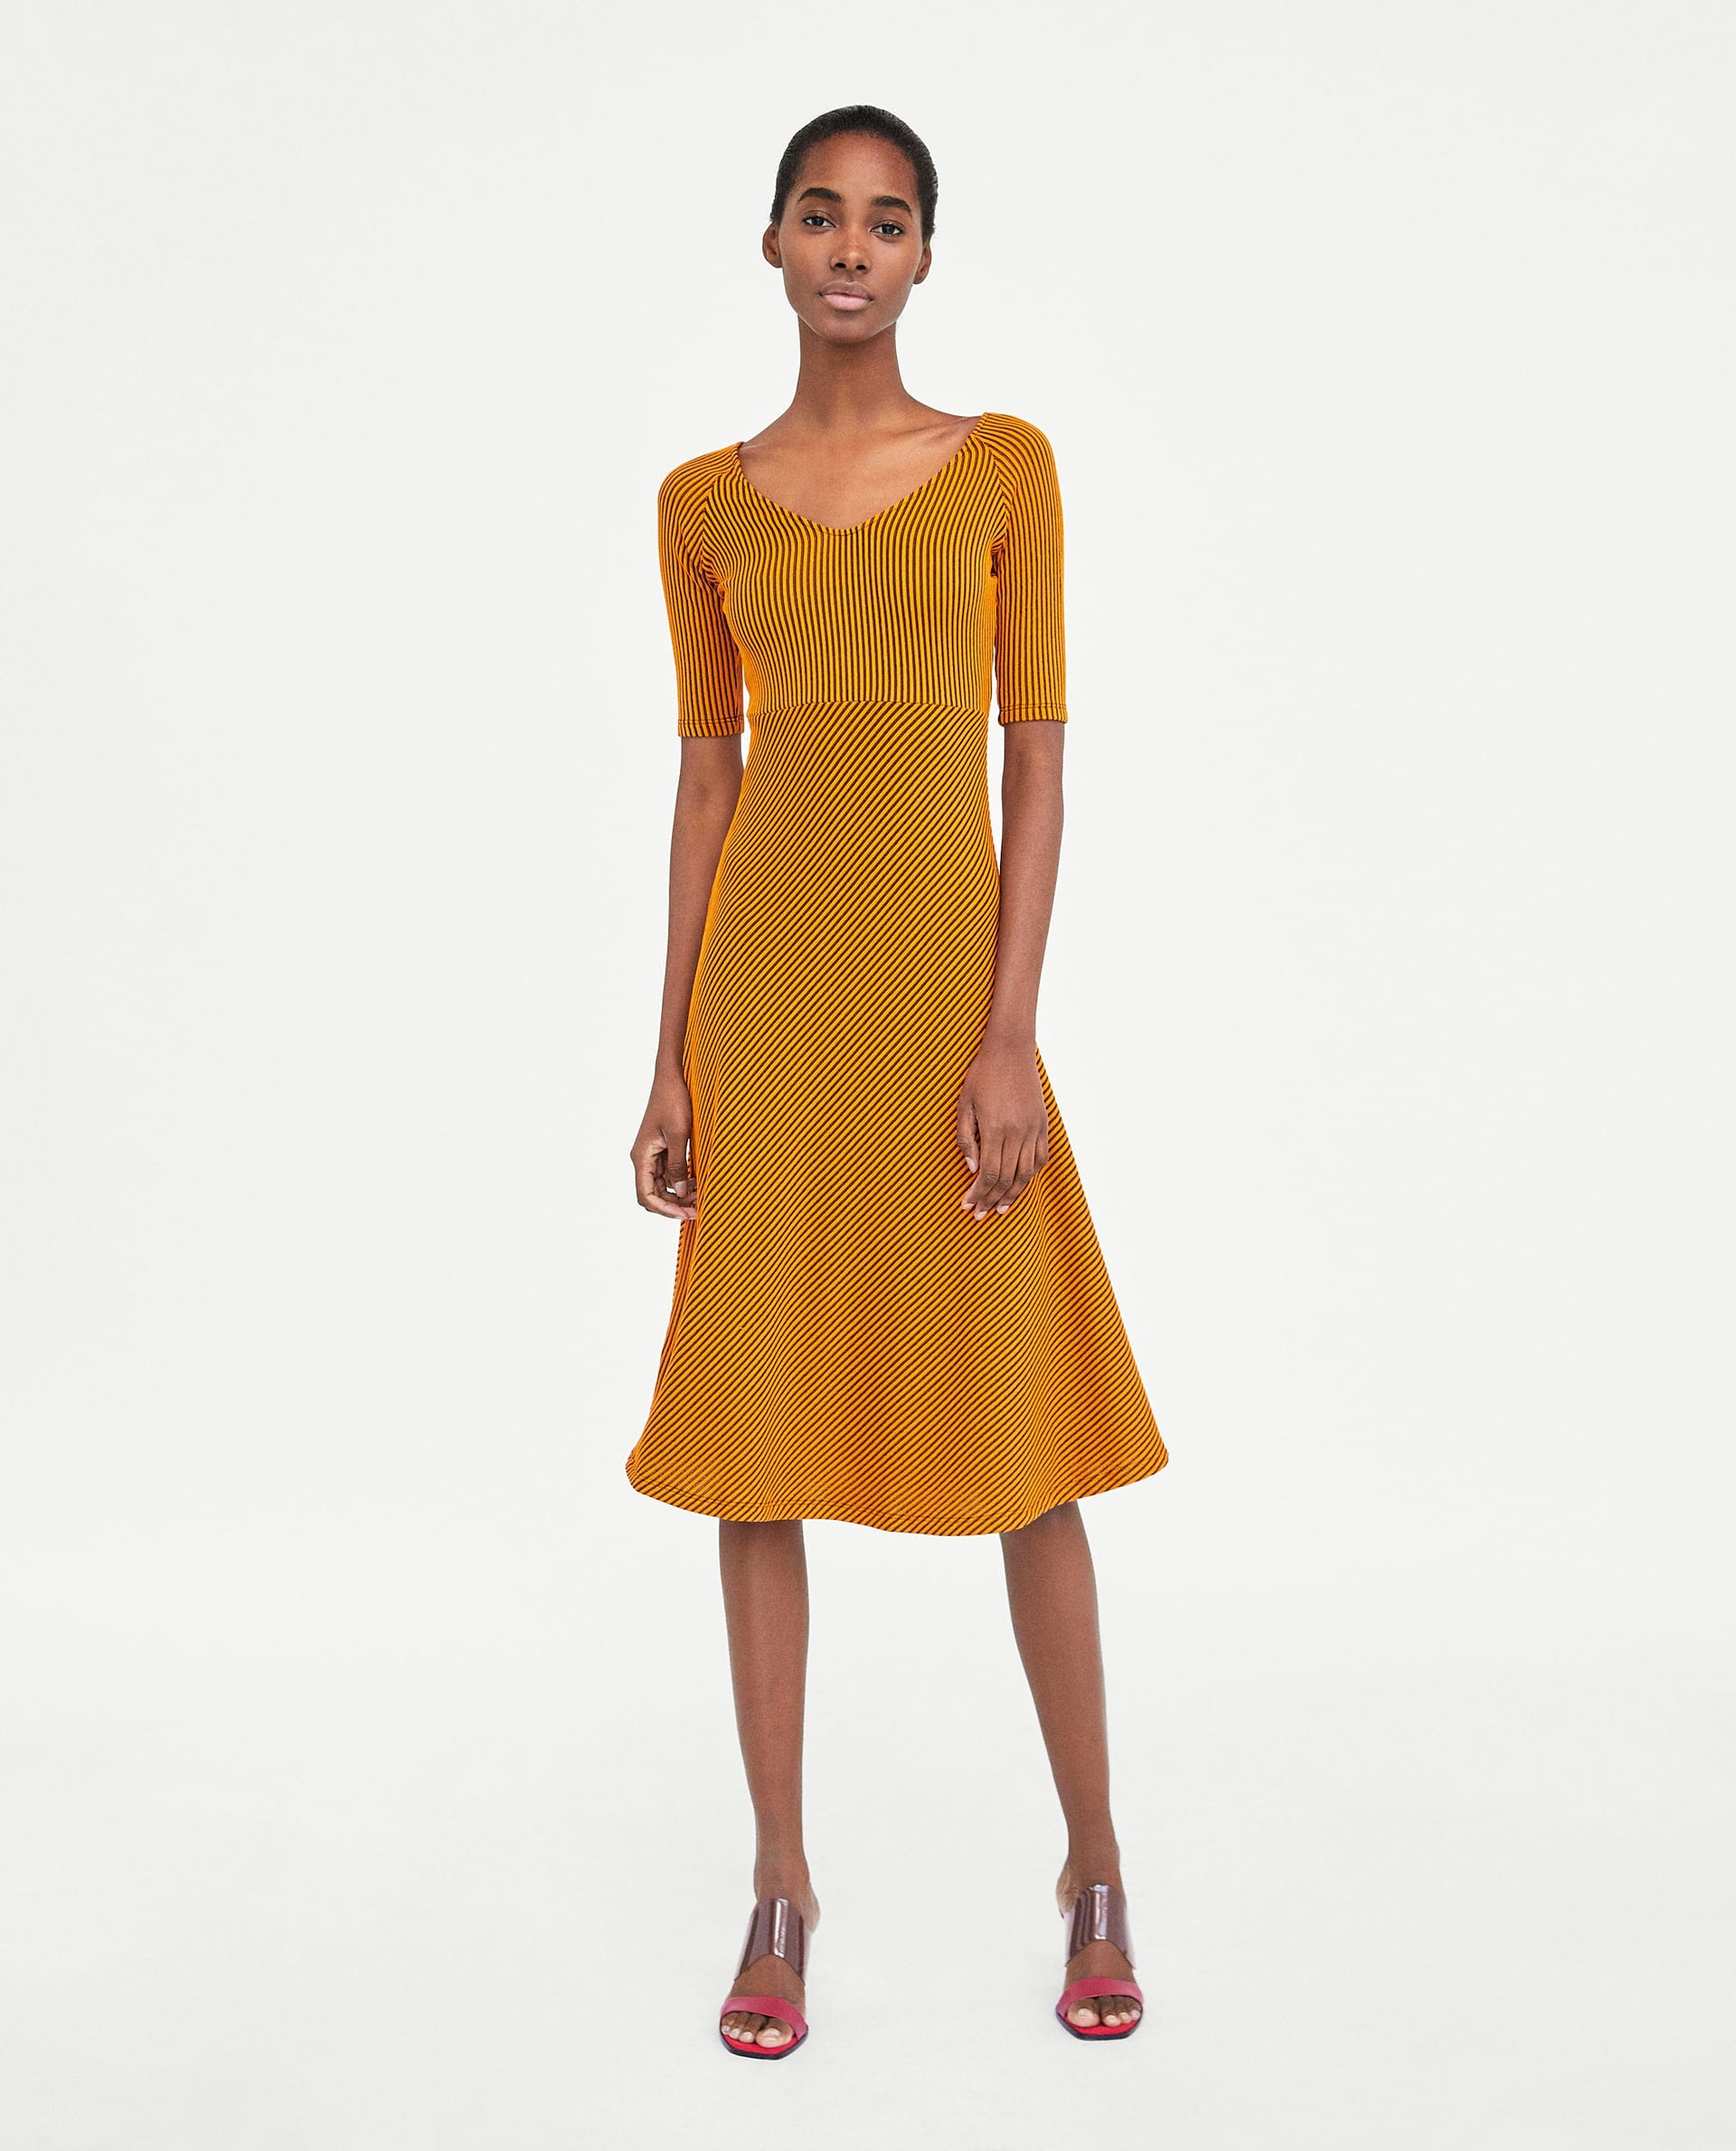 aac148881a24 Zara Midi Dress Trend Dresses For Women